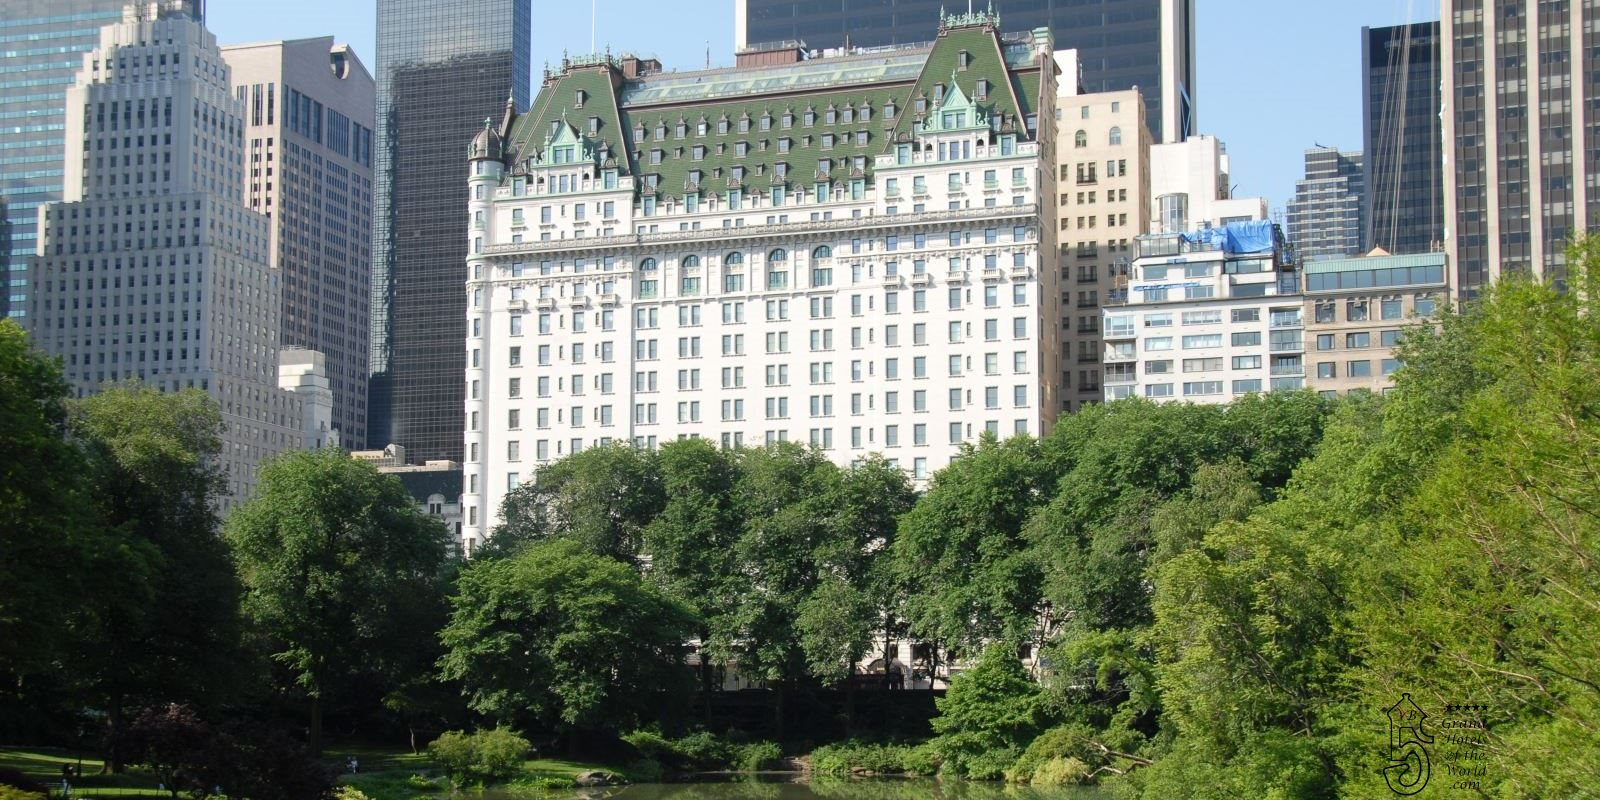 Hotel Plaza in New York